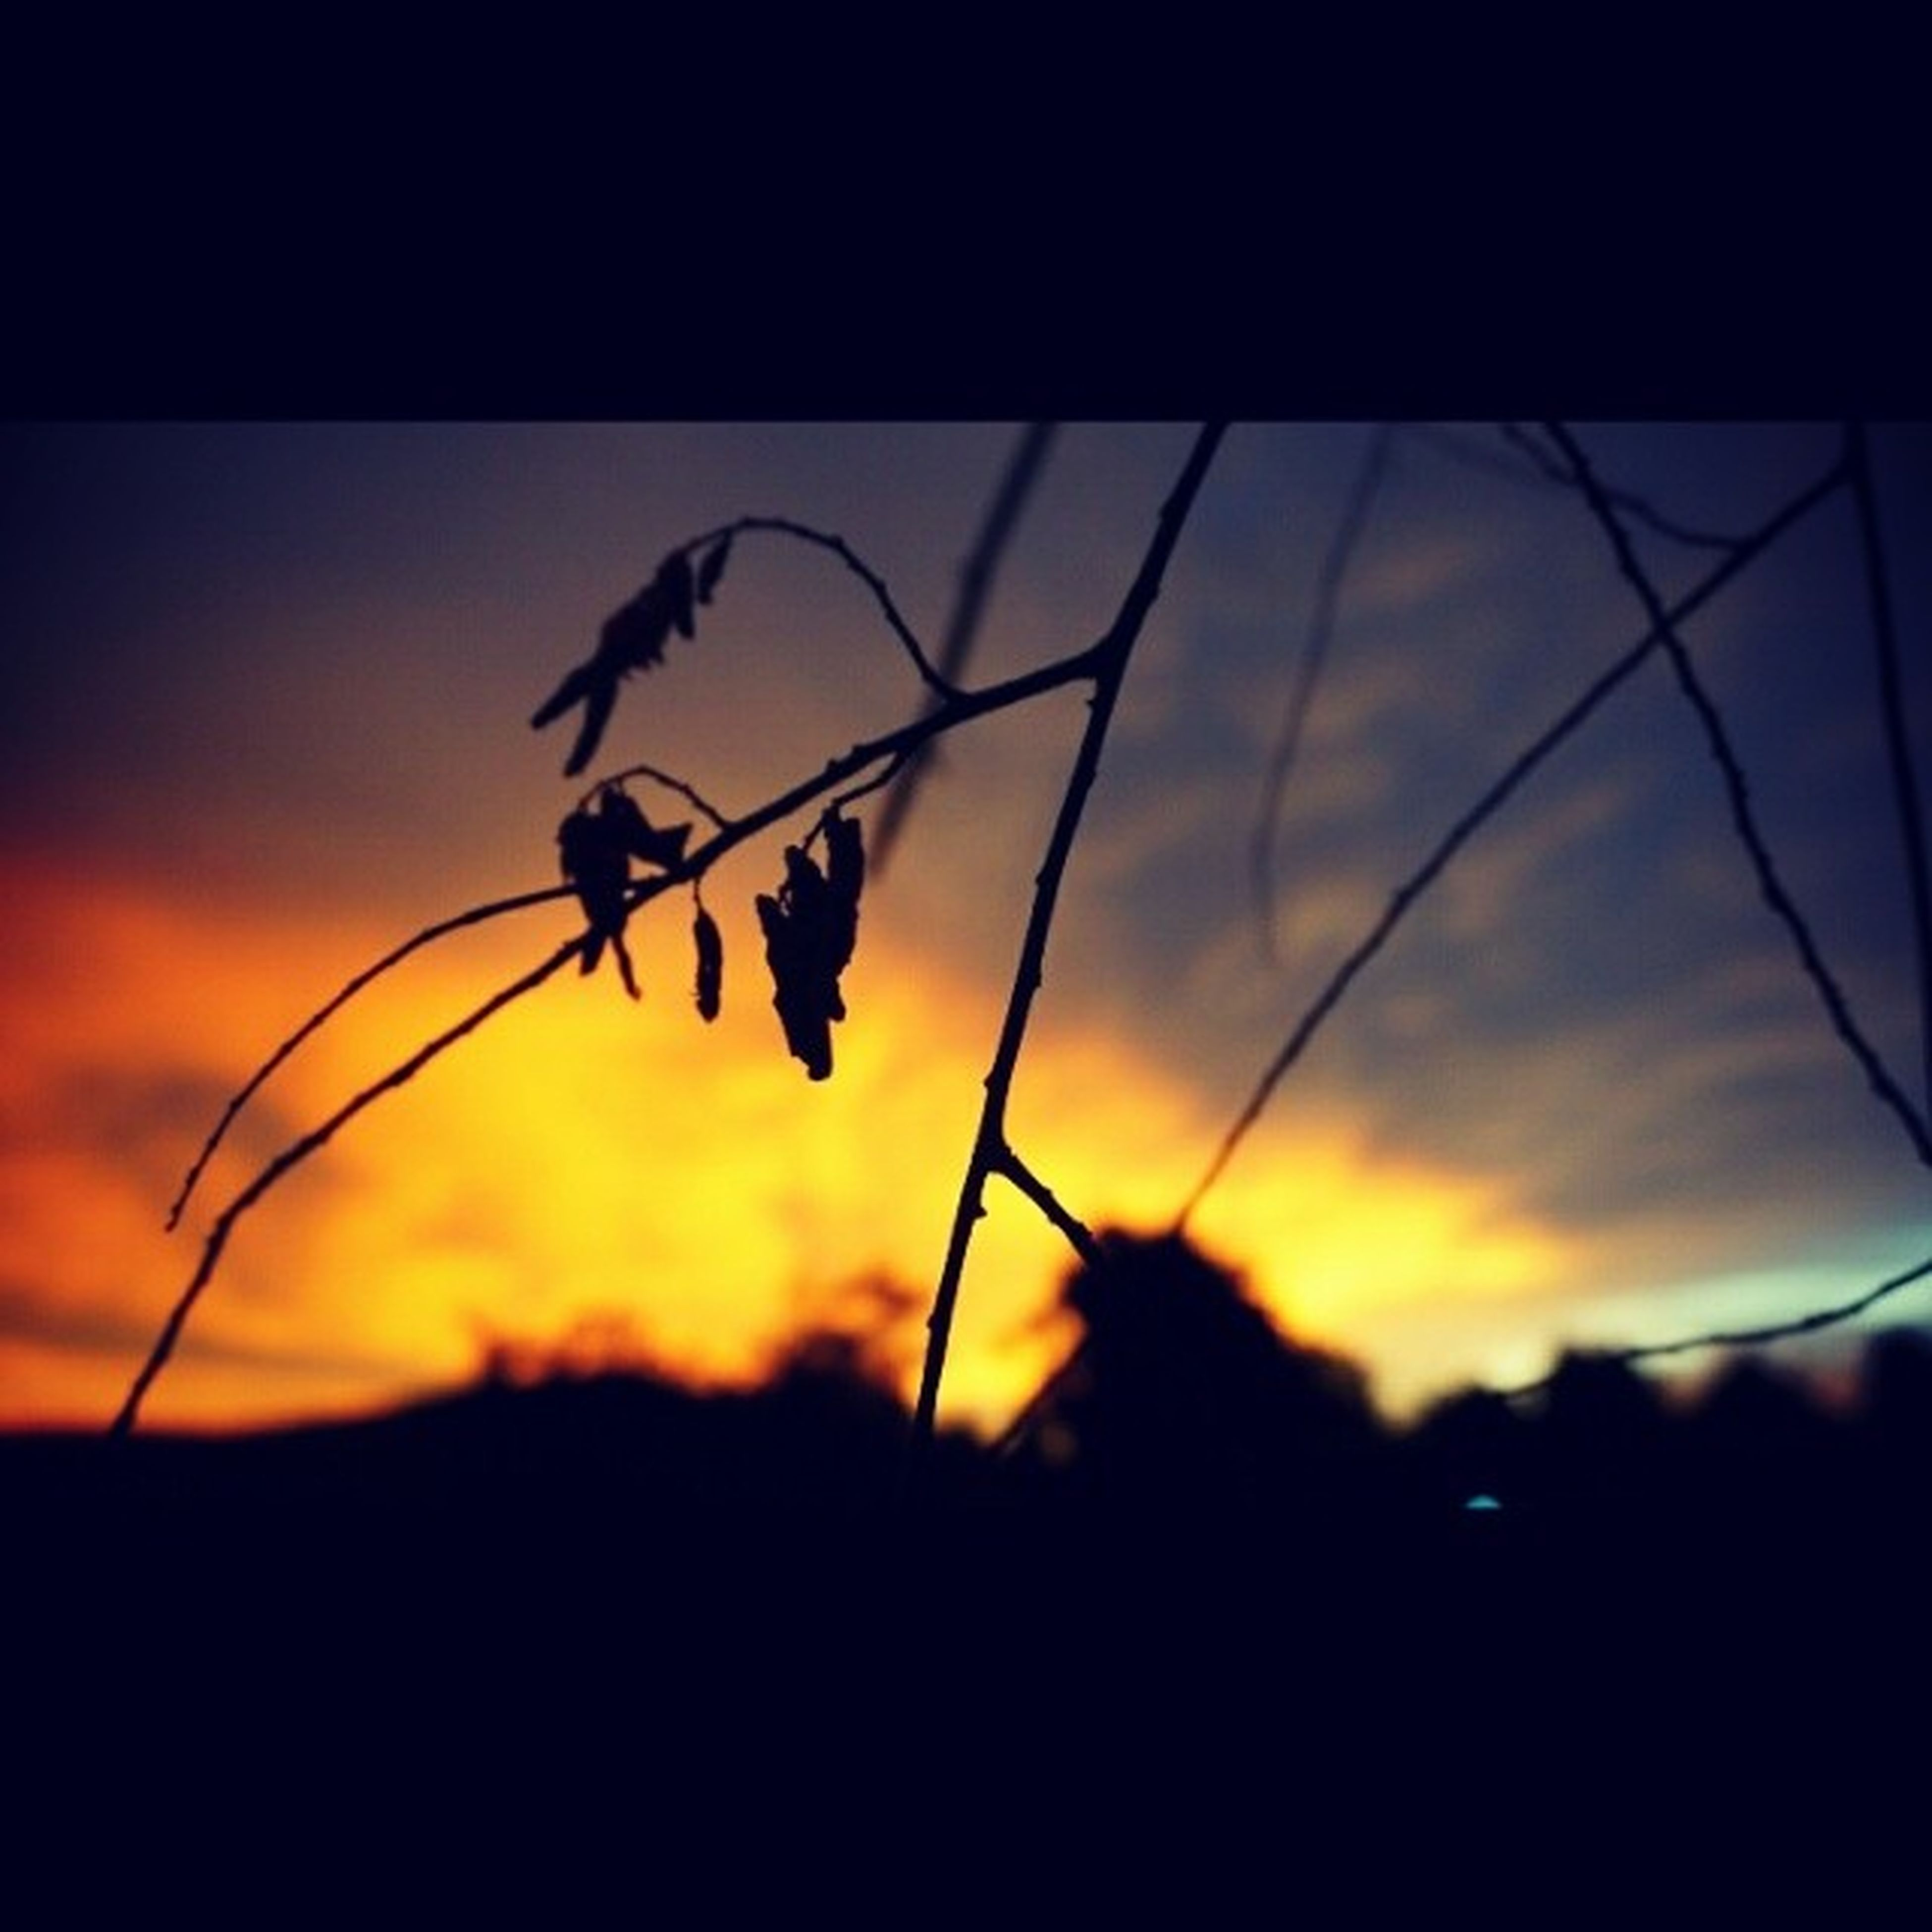 silhouette, sunset, insect, sky, focus on foreground, animal themes, nature, one animal, plant, selective focus, close-up, stem, wildlife, orange color, animals in the wild, beauty in nature, outdoors, low angle view, spider, no people